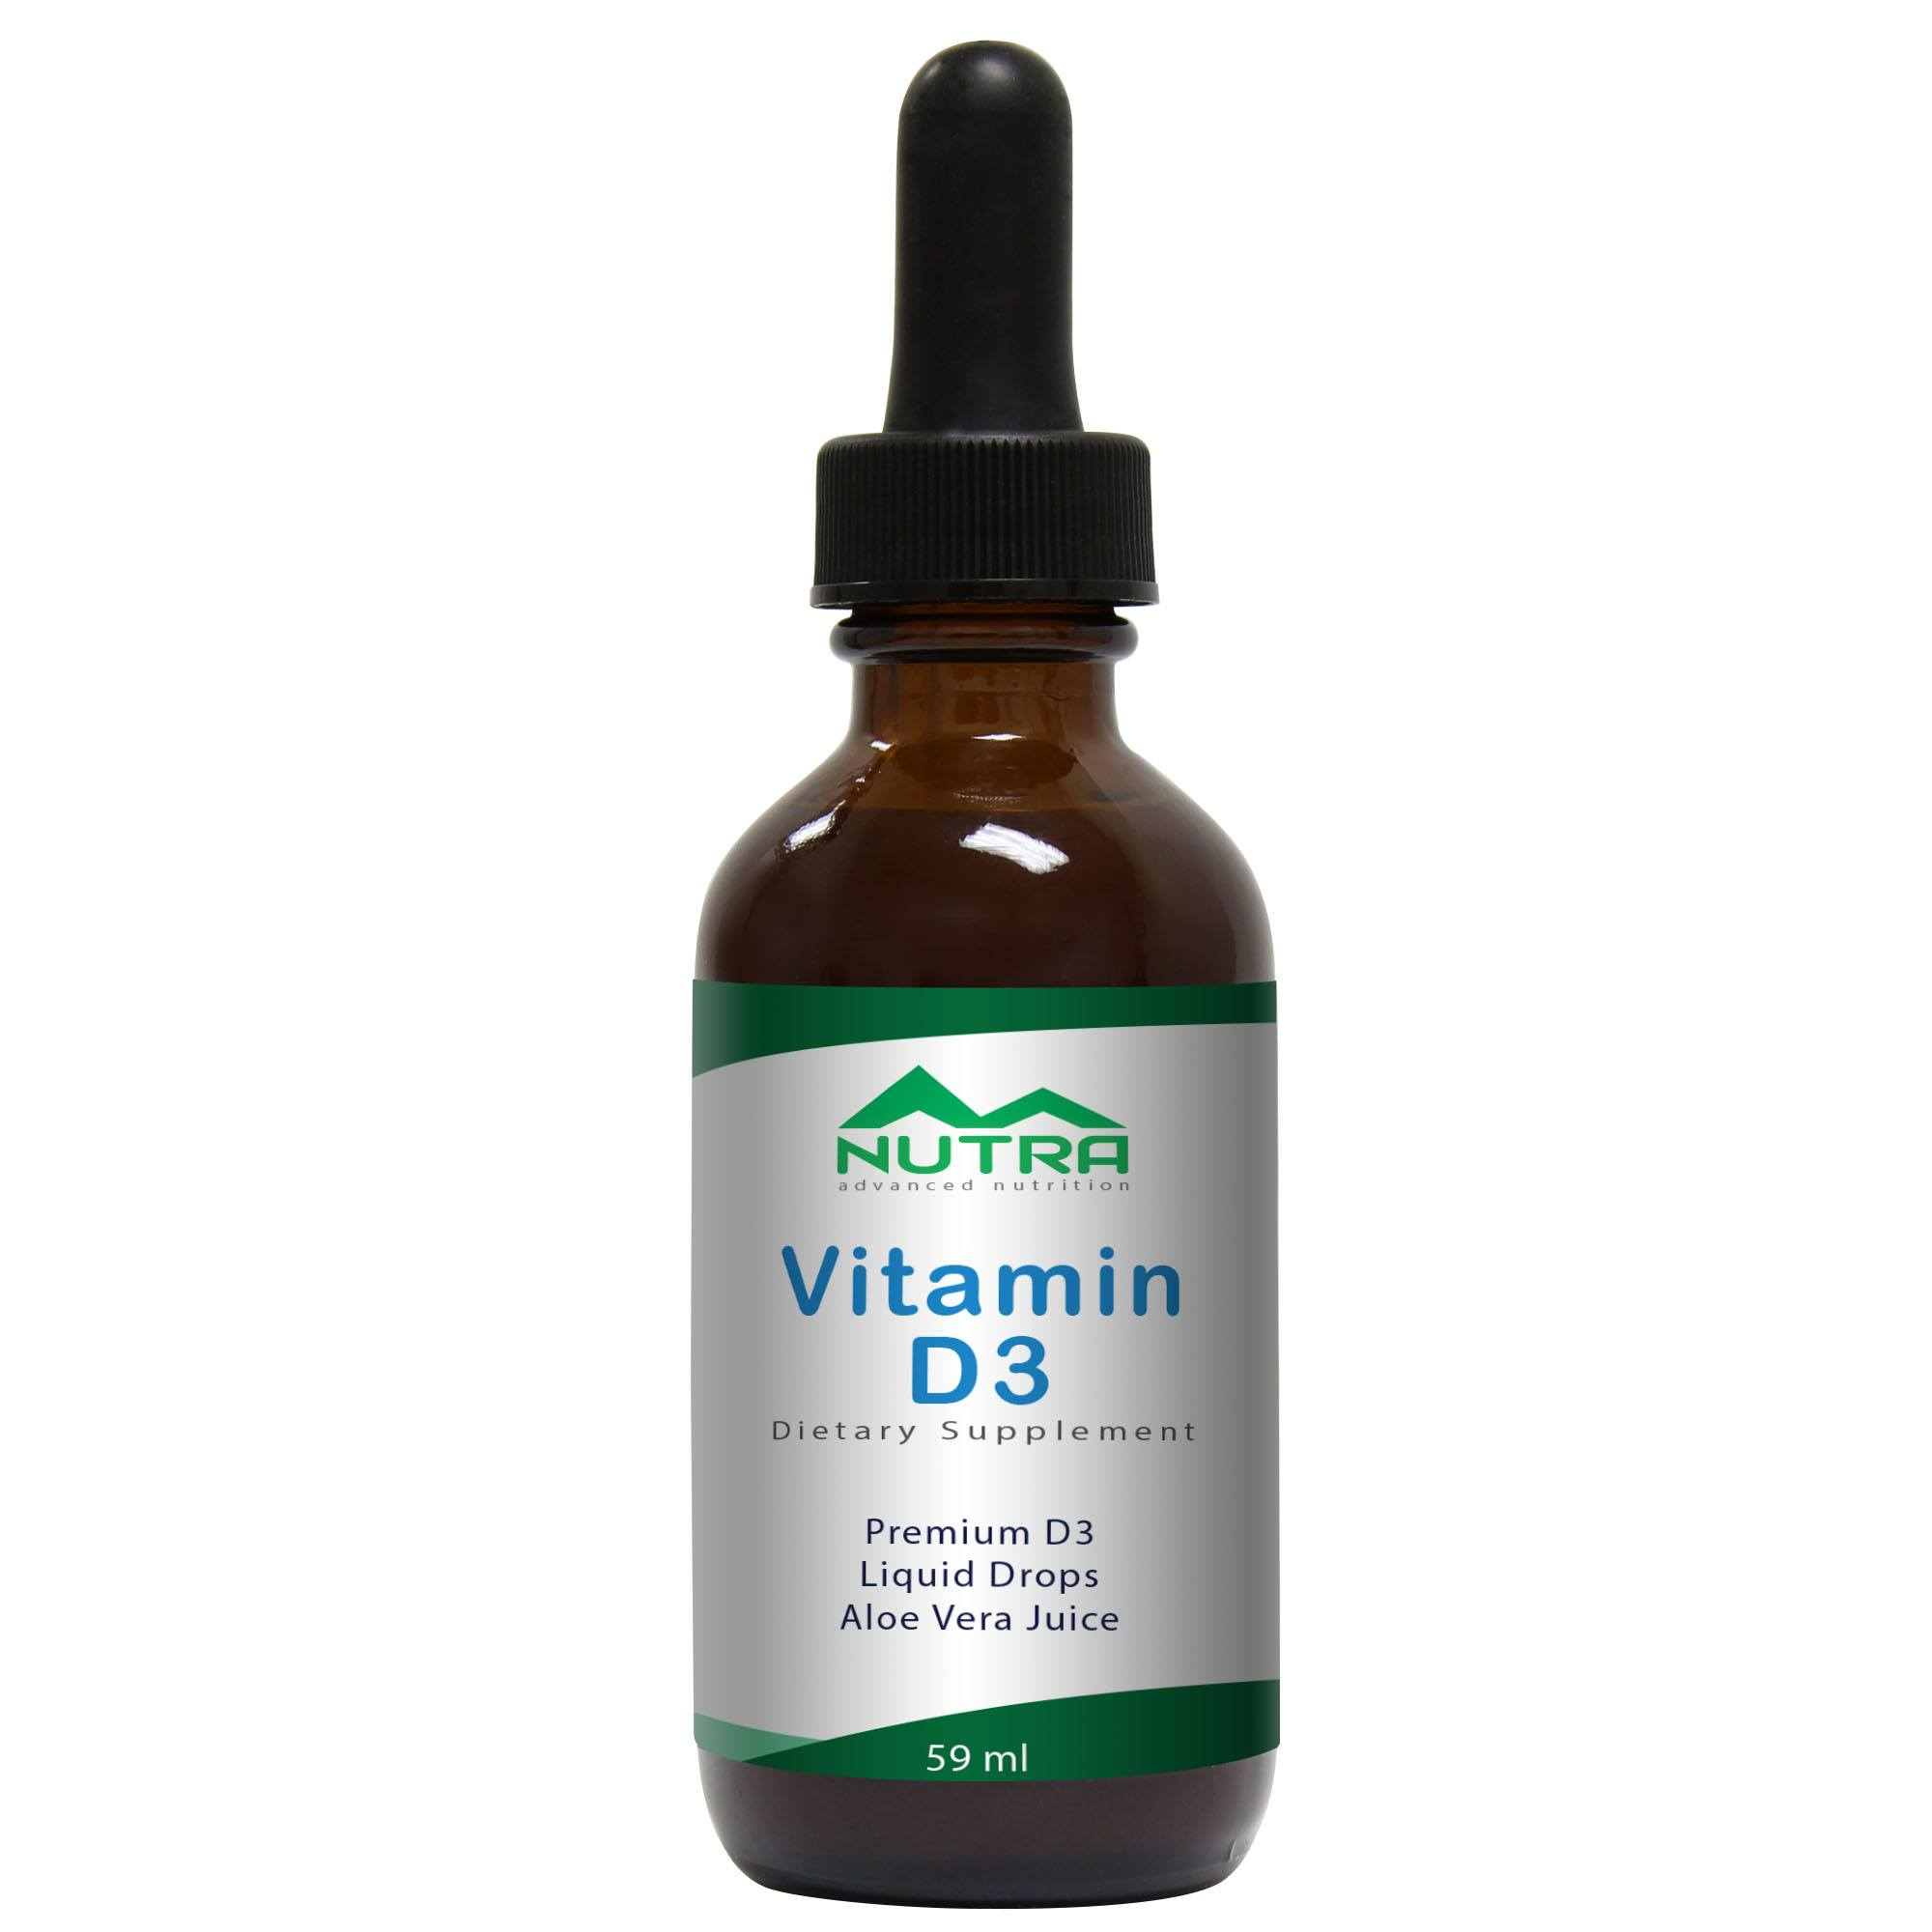 Private Label Vitamin D3 Drops Manufacturer